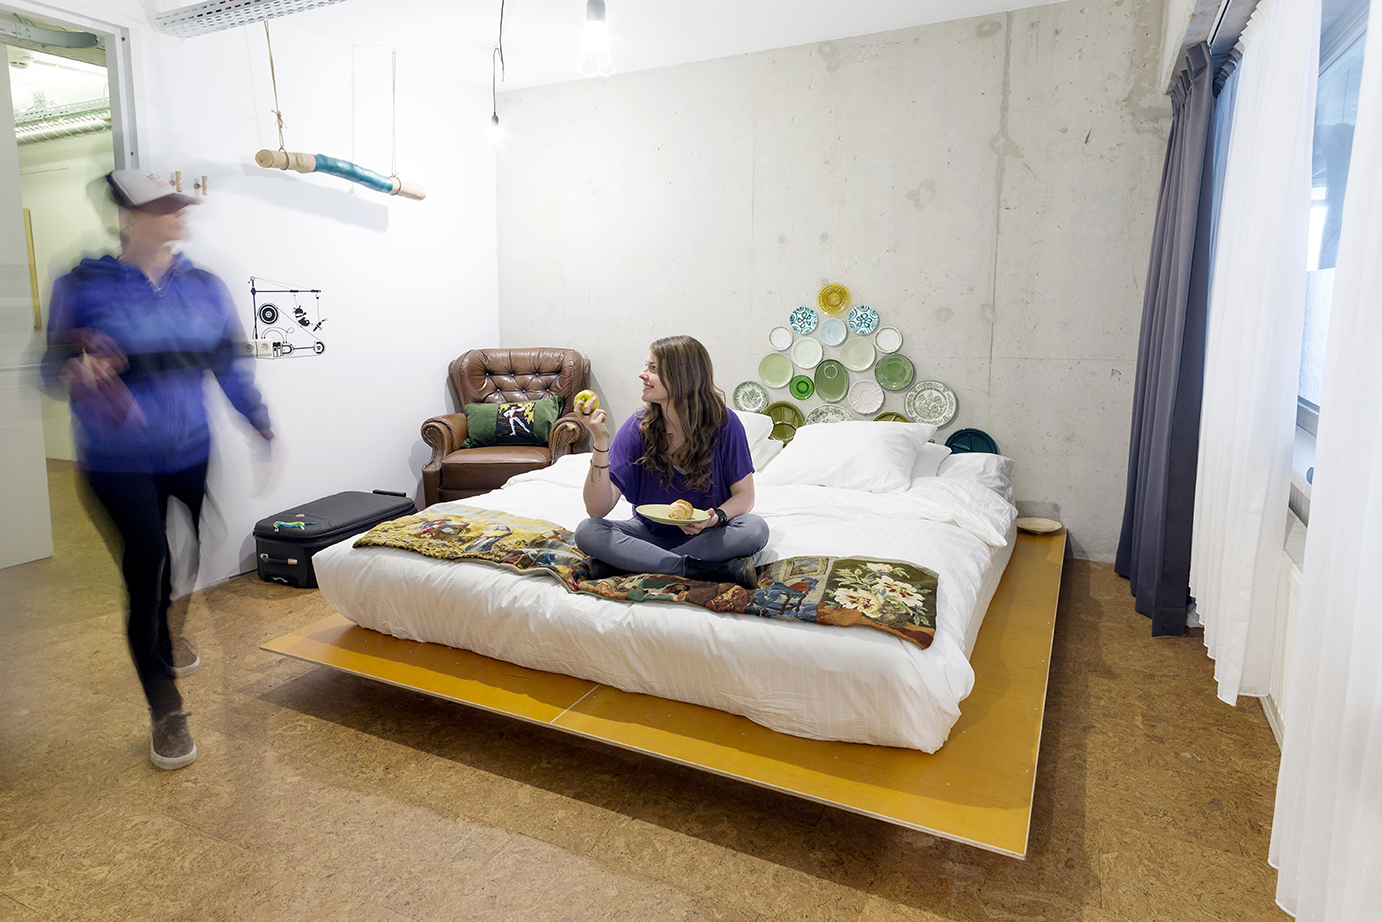 eco_room_double with girl on bed and one walking.jpg